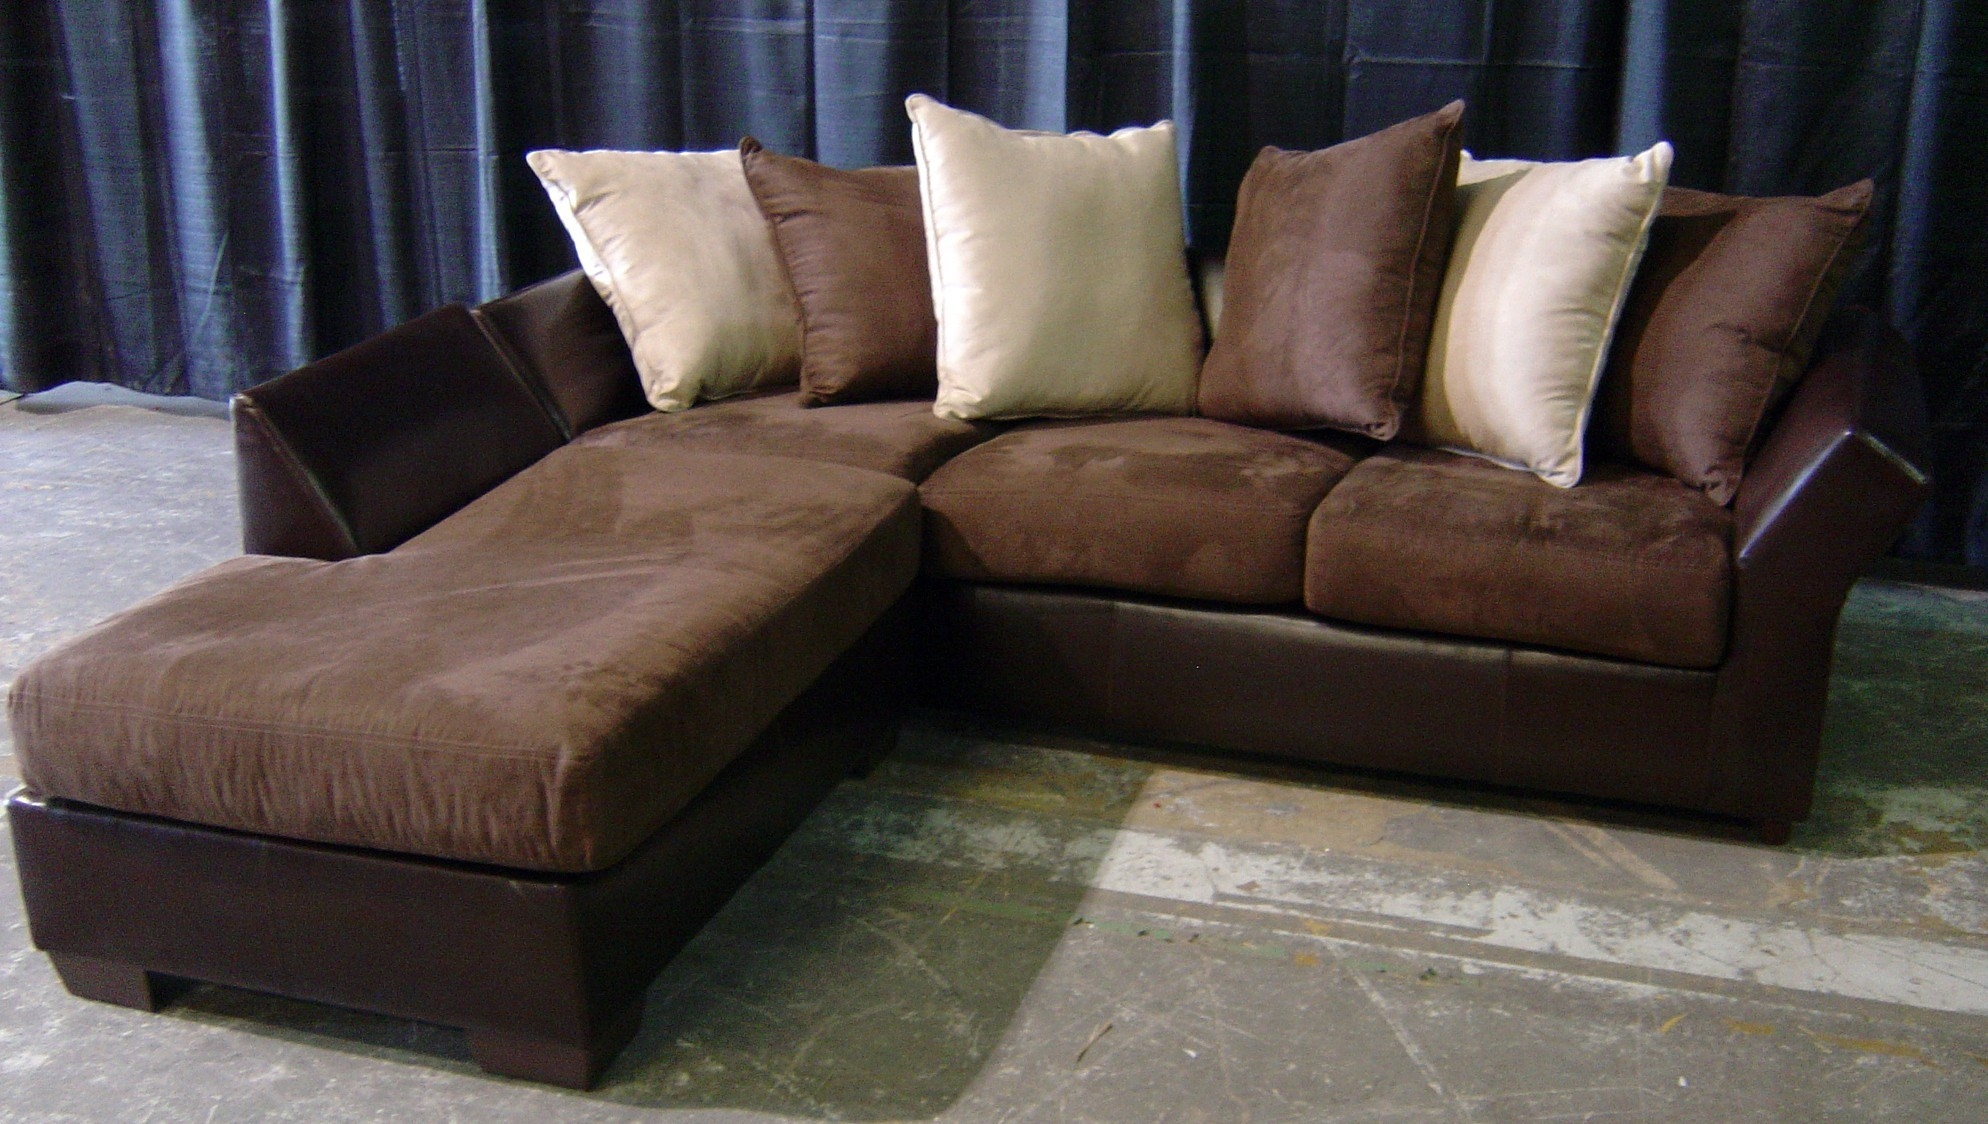 Furniture Brown Leather Sectional Couches Craigslist Missoula Inside Craigslist Leather Sofa (#8 of 12)